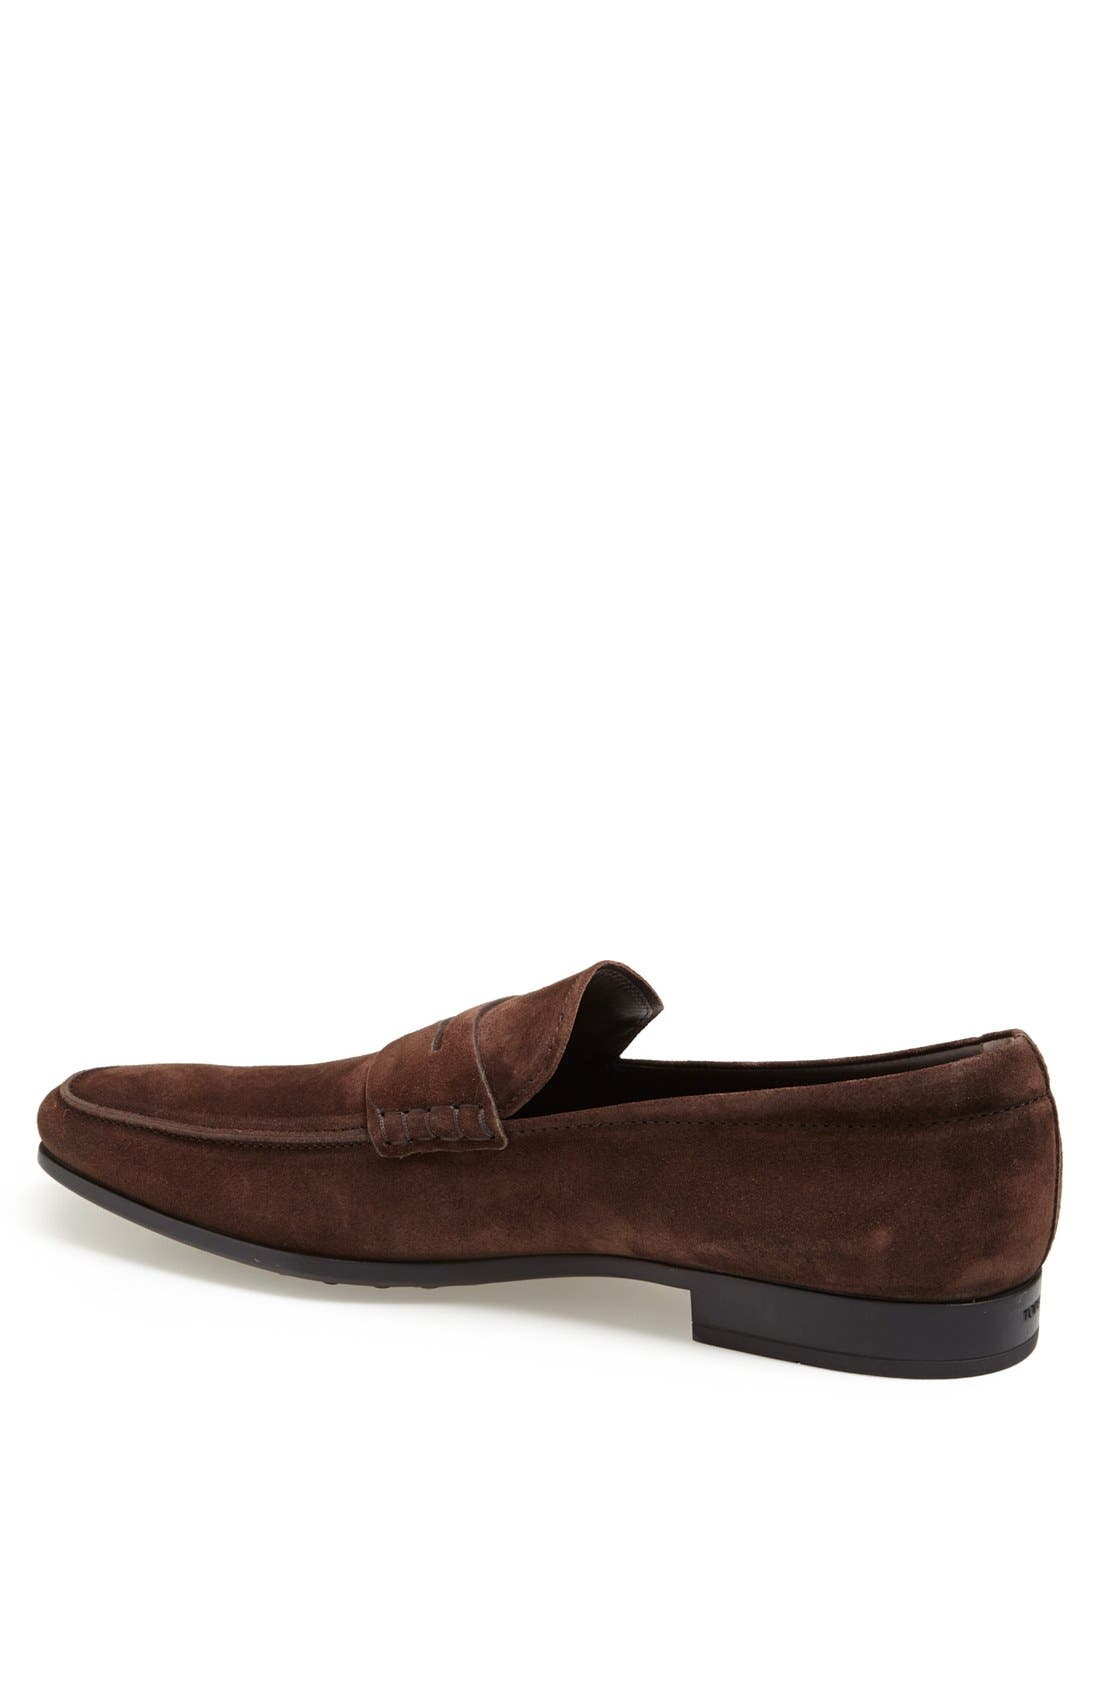 Alternate Image 2  - Tod's 'Gomma' Suede Penny Loafer